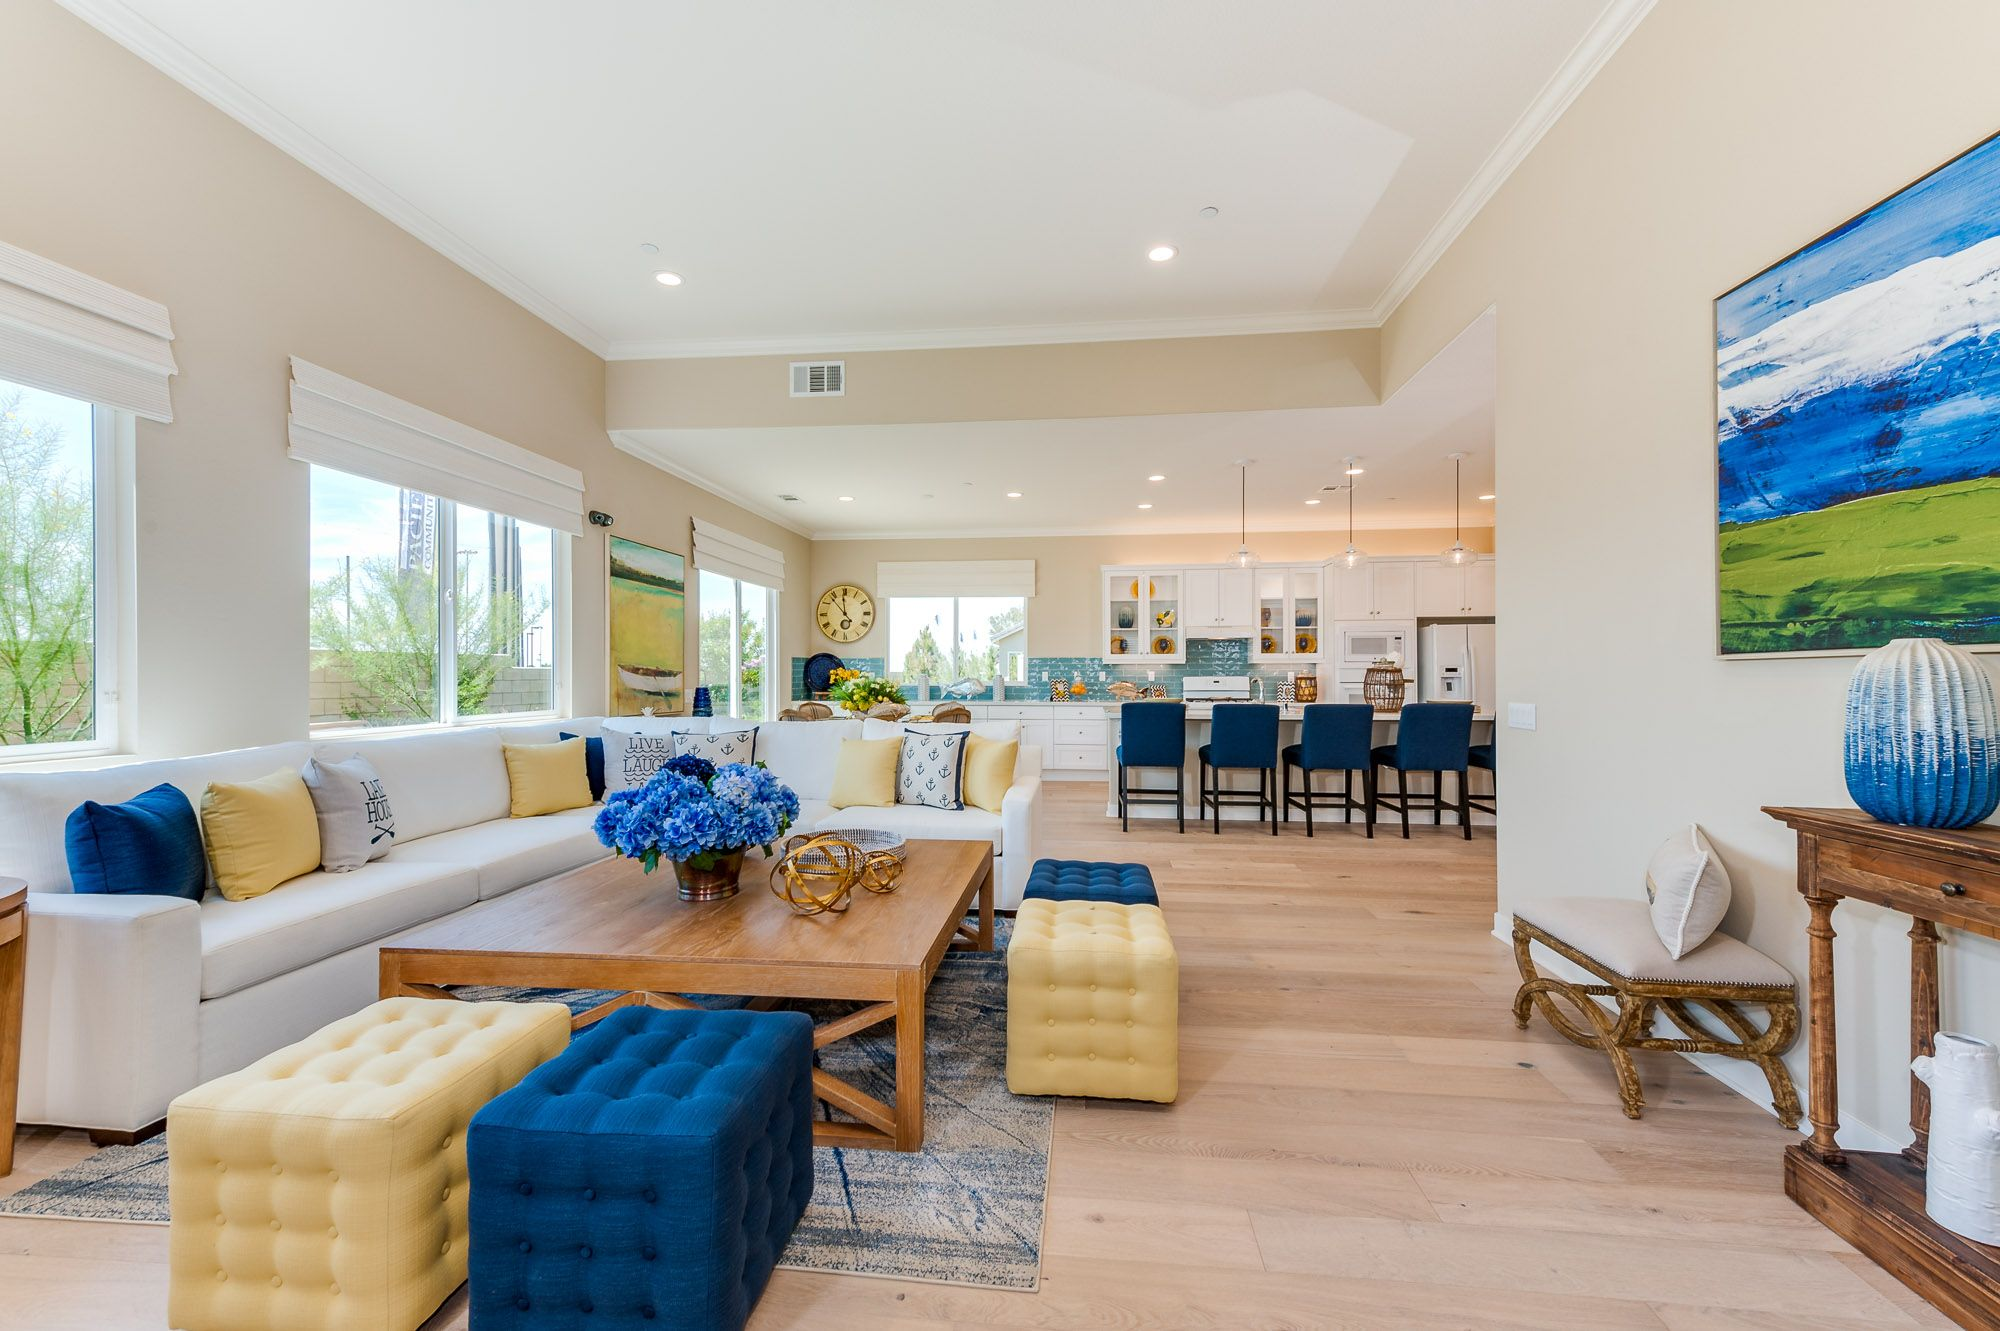 Pacific Melrose Plan 2 Model Home Family Room Pacific Communities